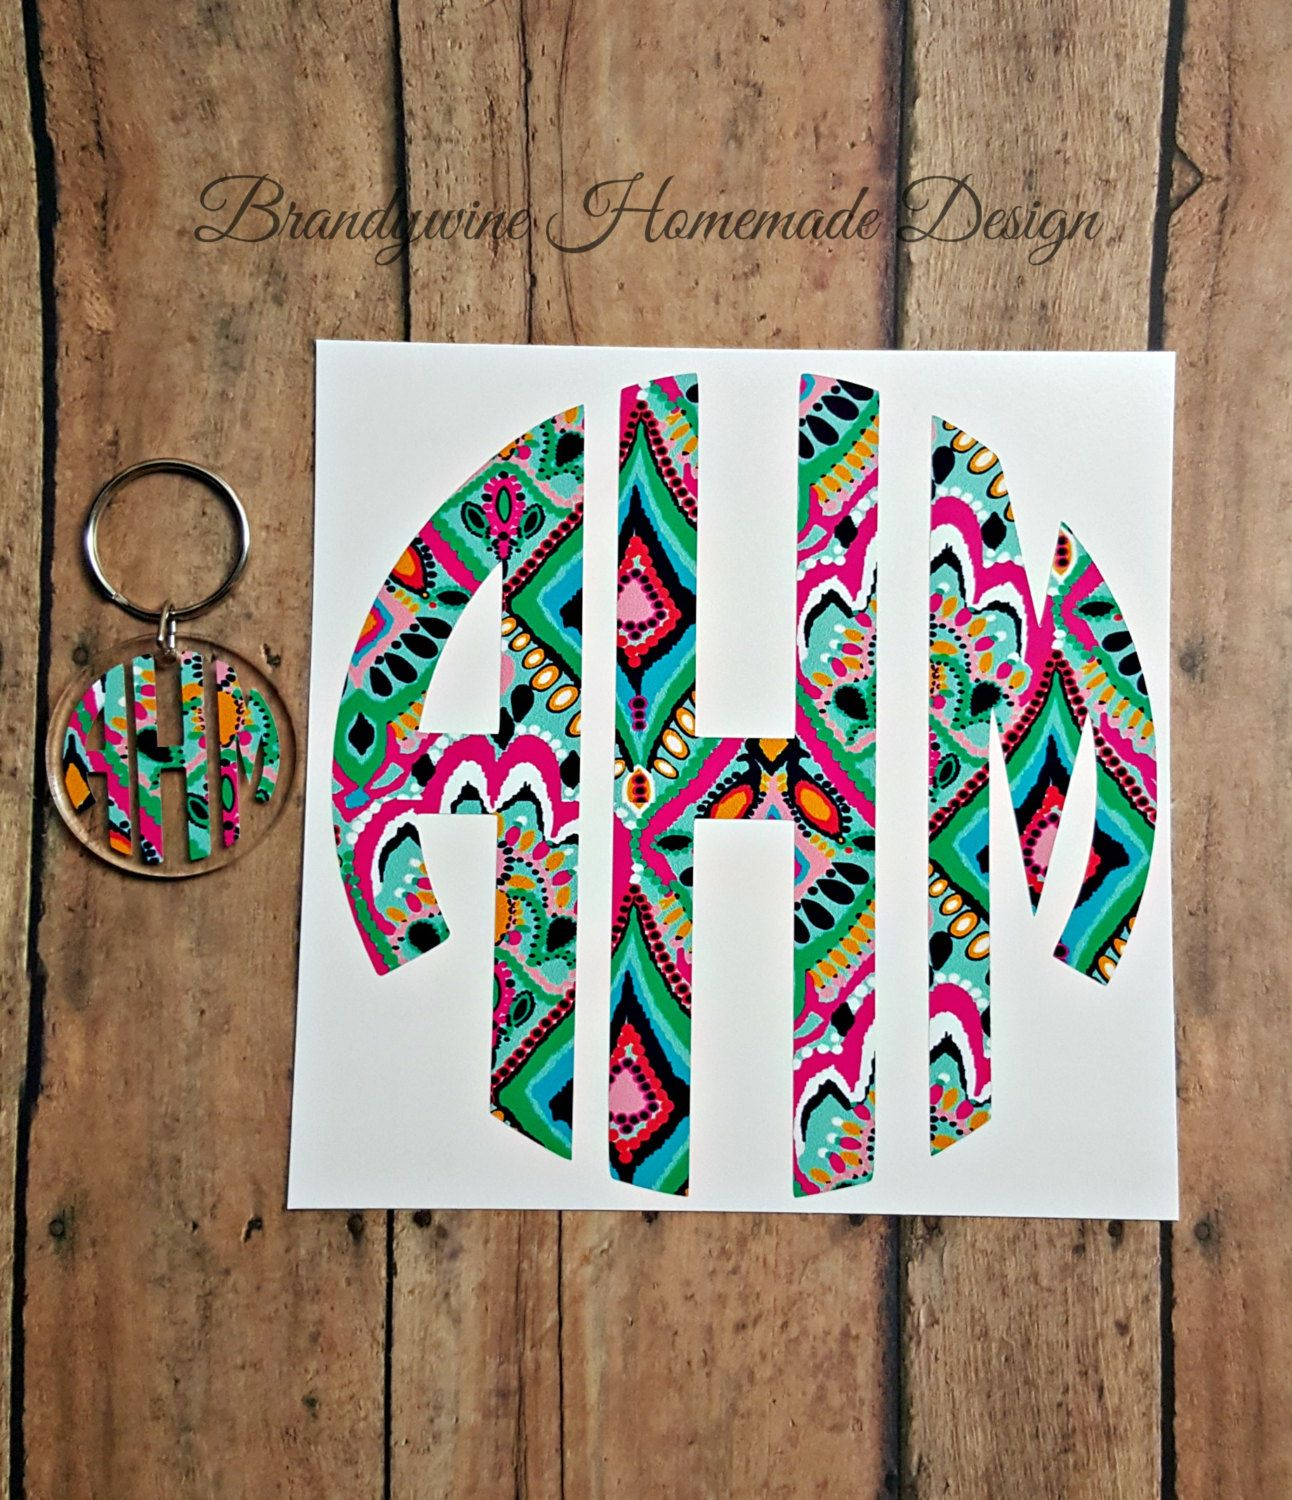 Lilly Pulitzer Inspired Monogram DecalLilly Pulitzer Key Chain - Custom printed vinyl car decals